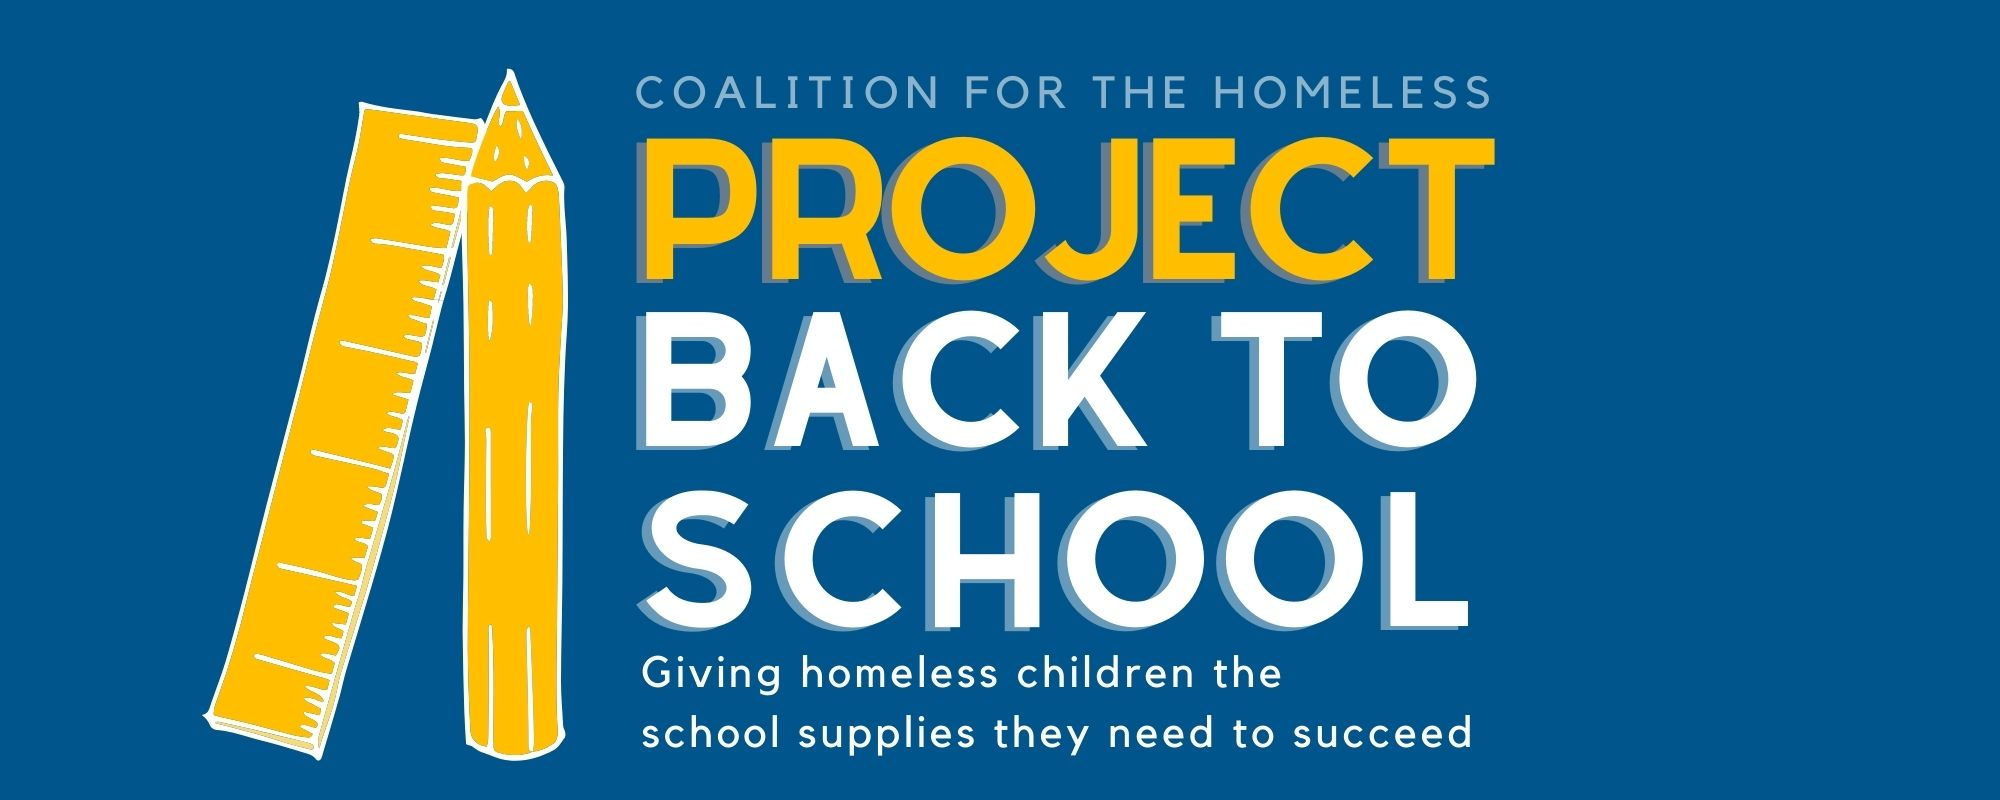 2021 Project: Back to School